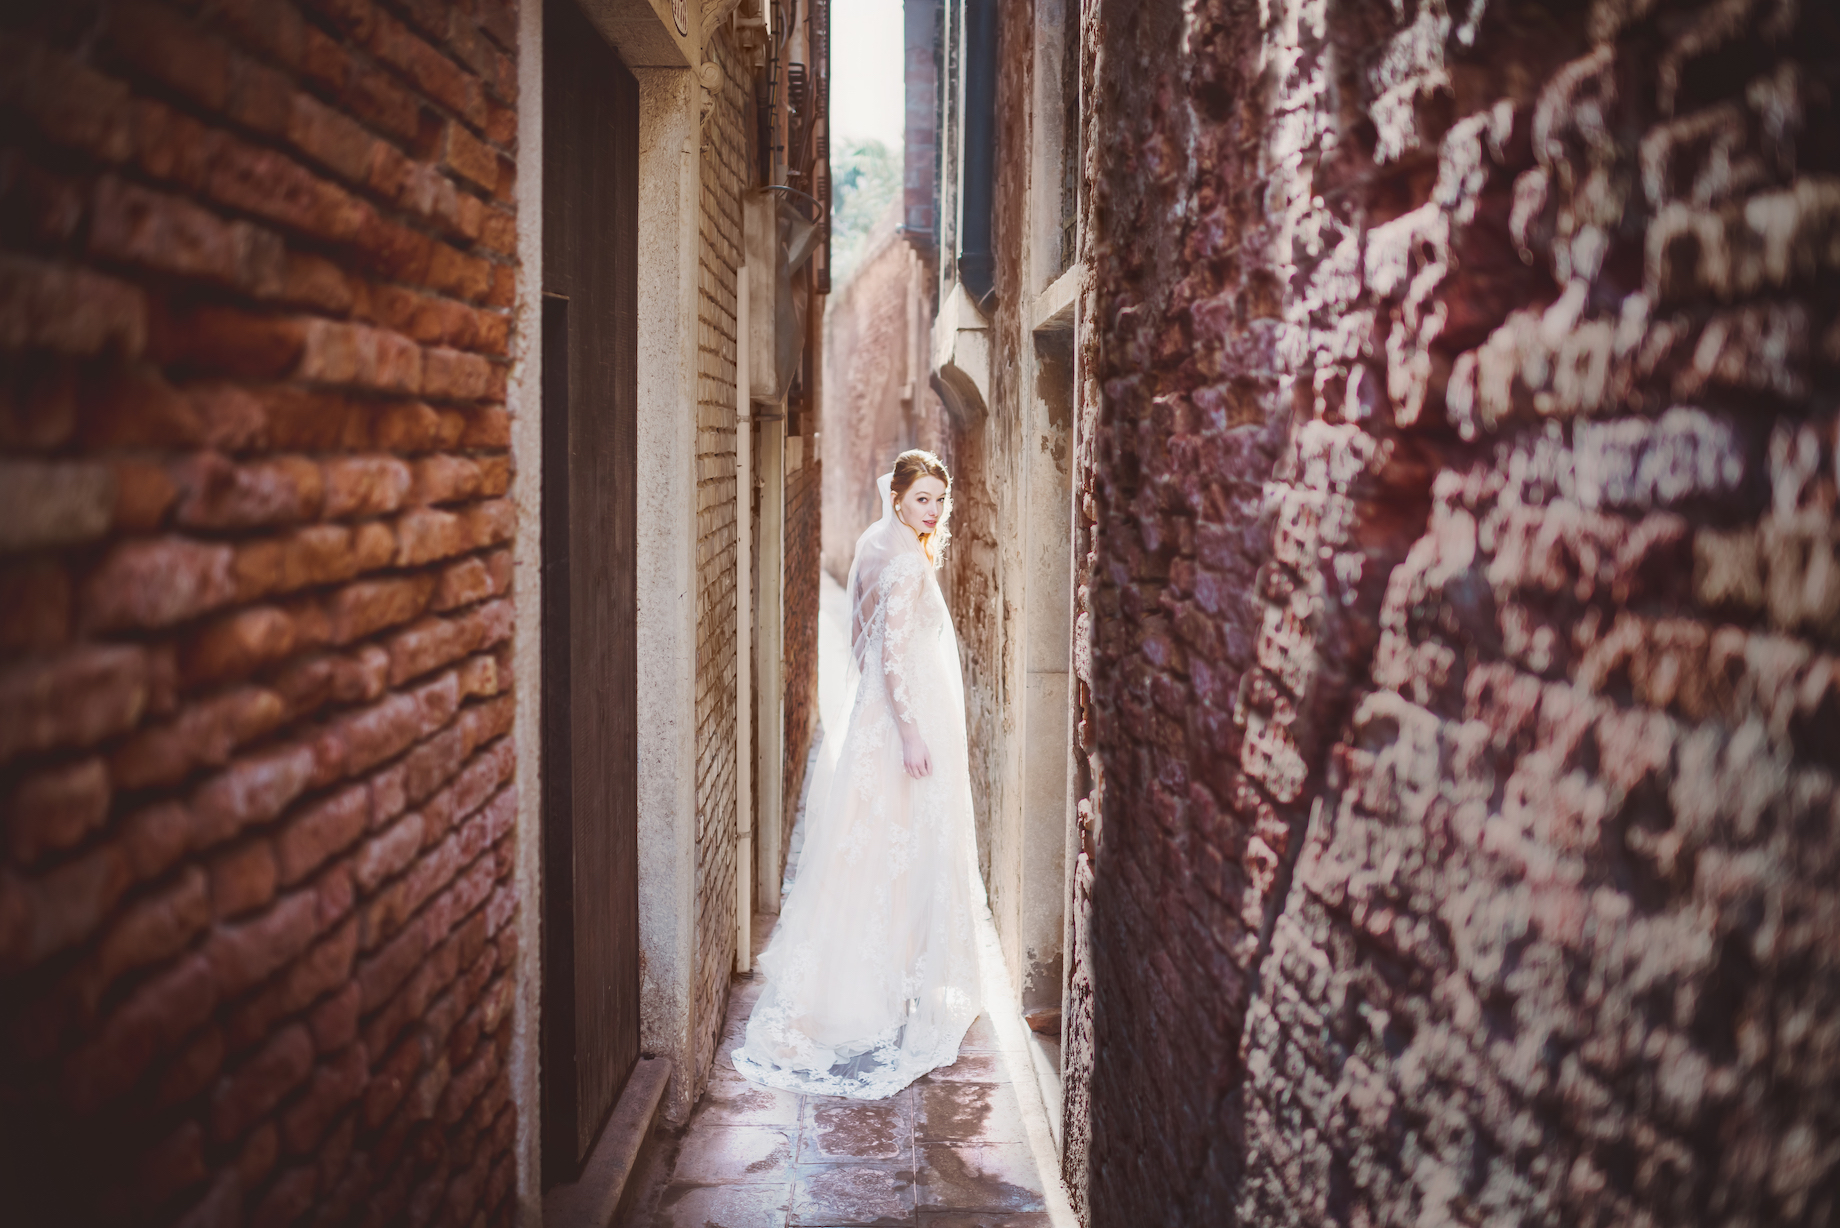 Venice-Wedding-photography-matej-trasak-12.jpg